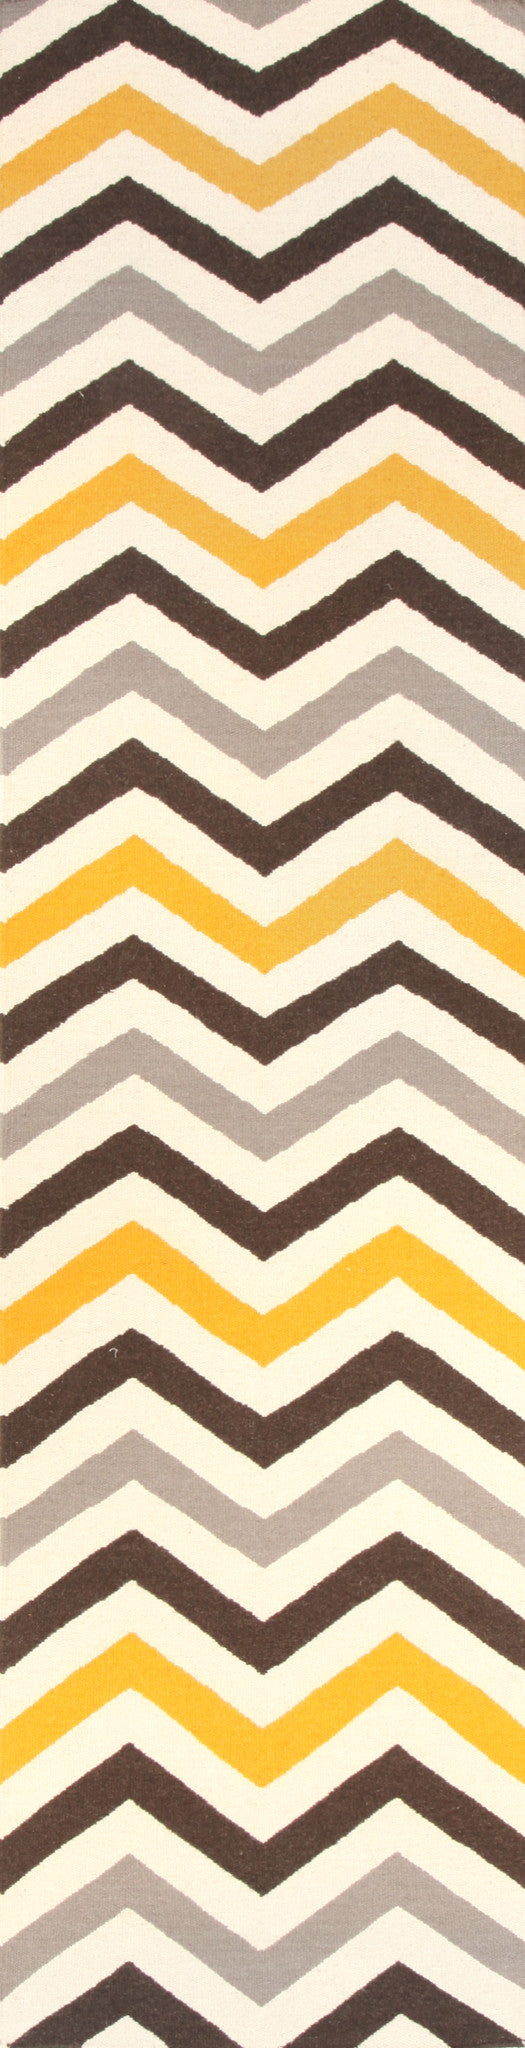 Flat Weave Design Rug Yellow Brown - MaddieBelle